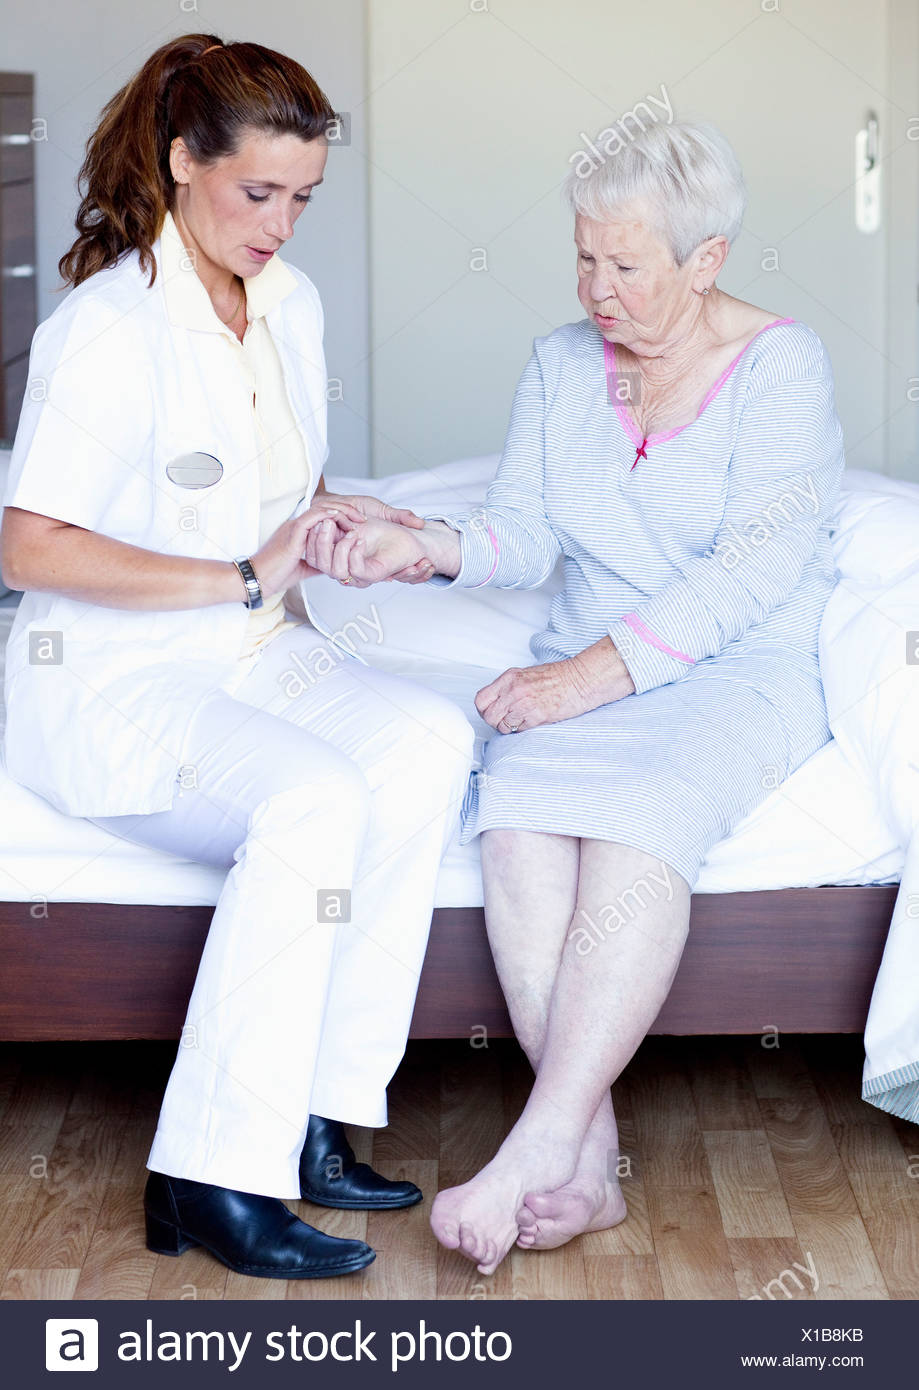 A senior woman having her pulse checked by a nurse - Stock Image